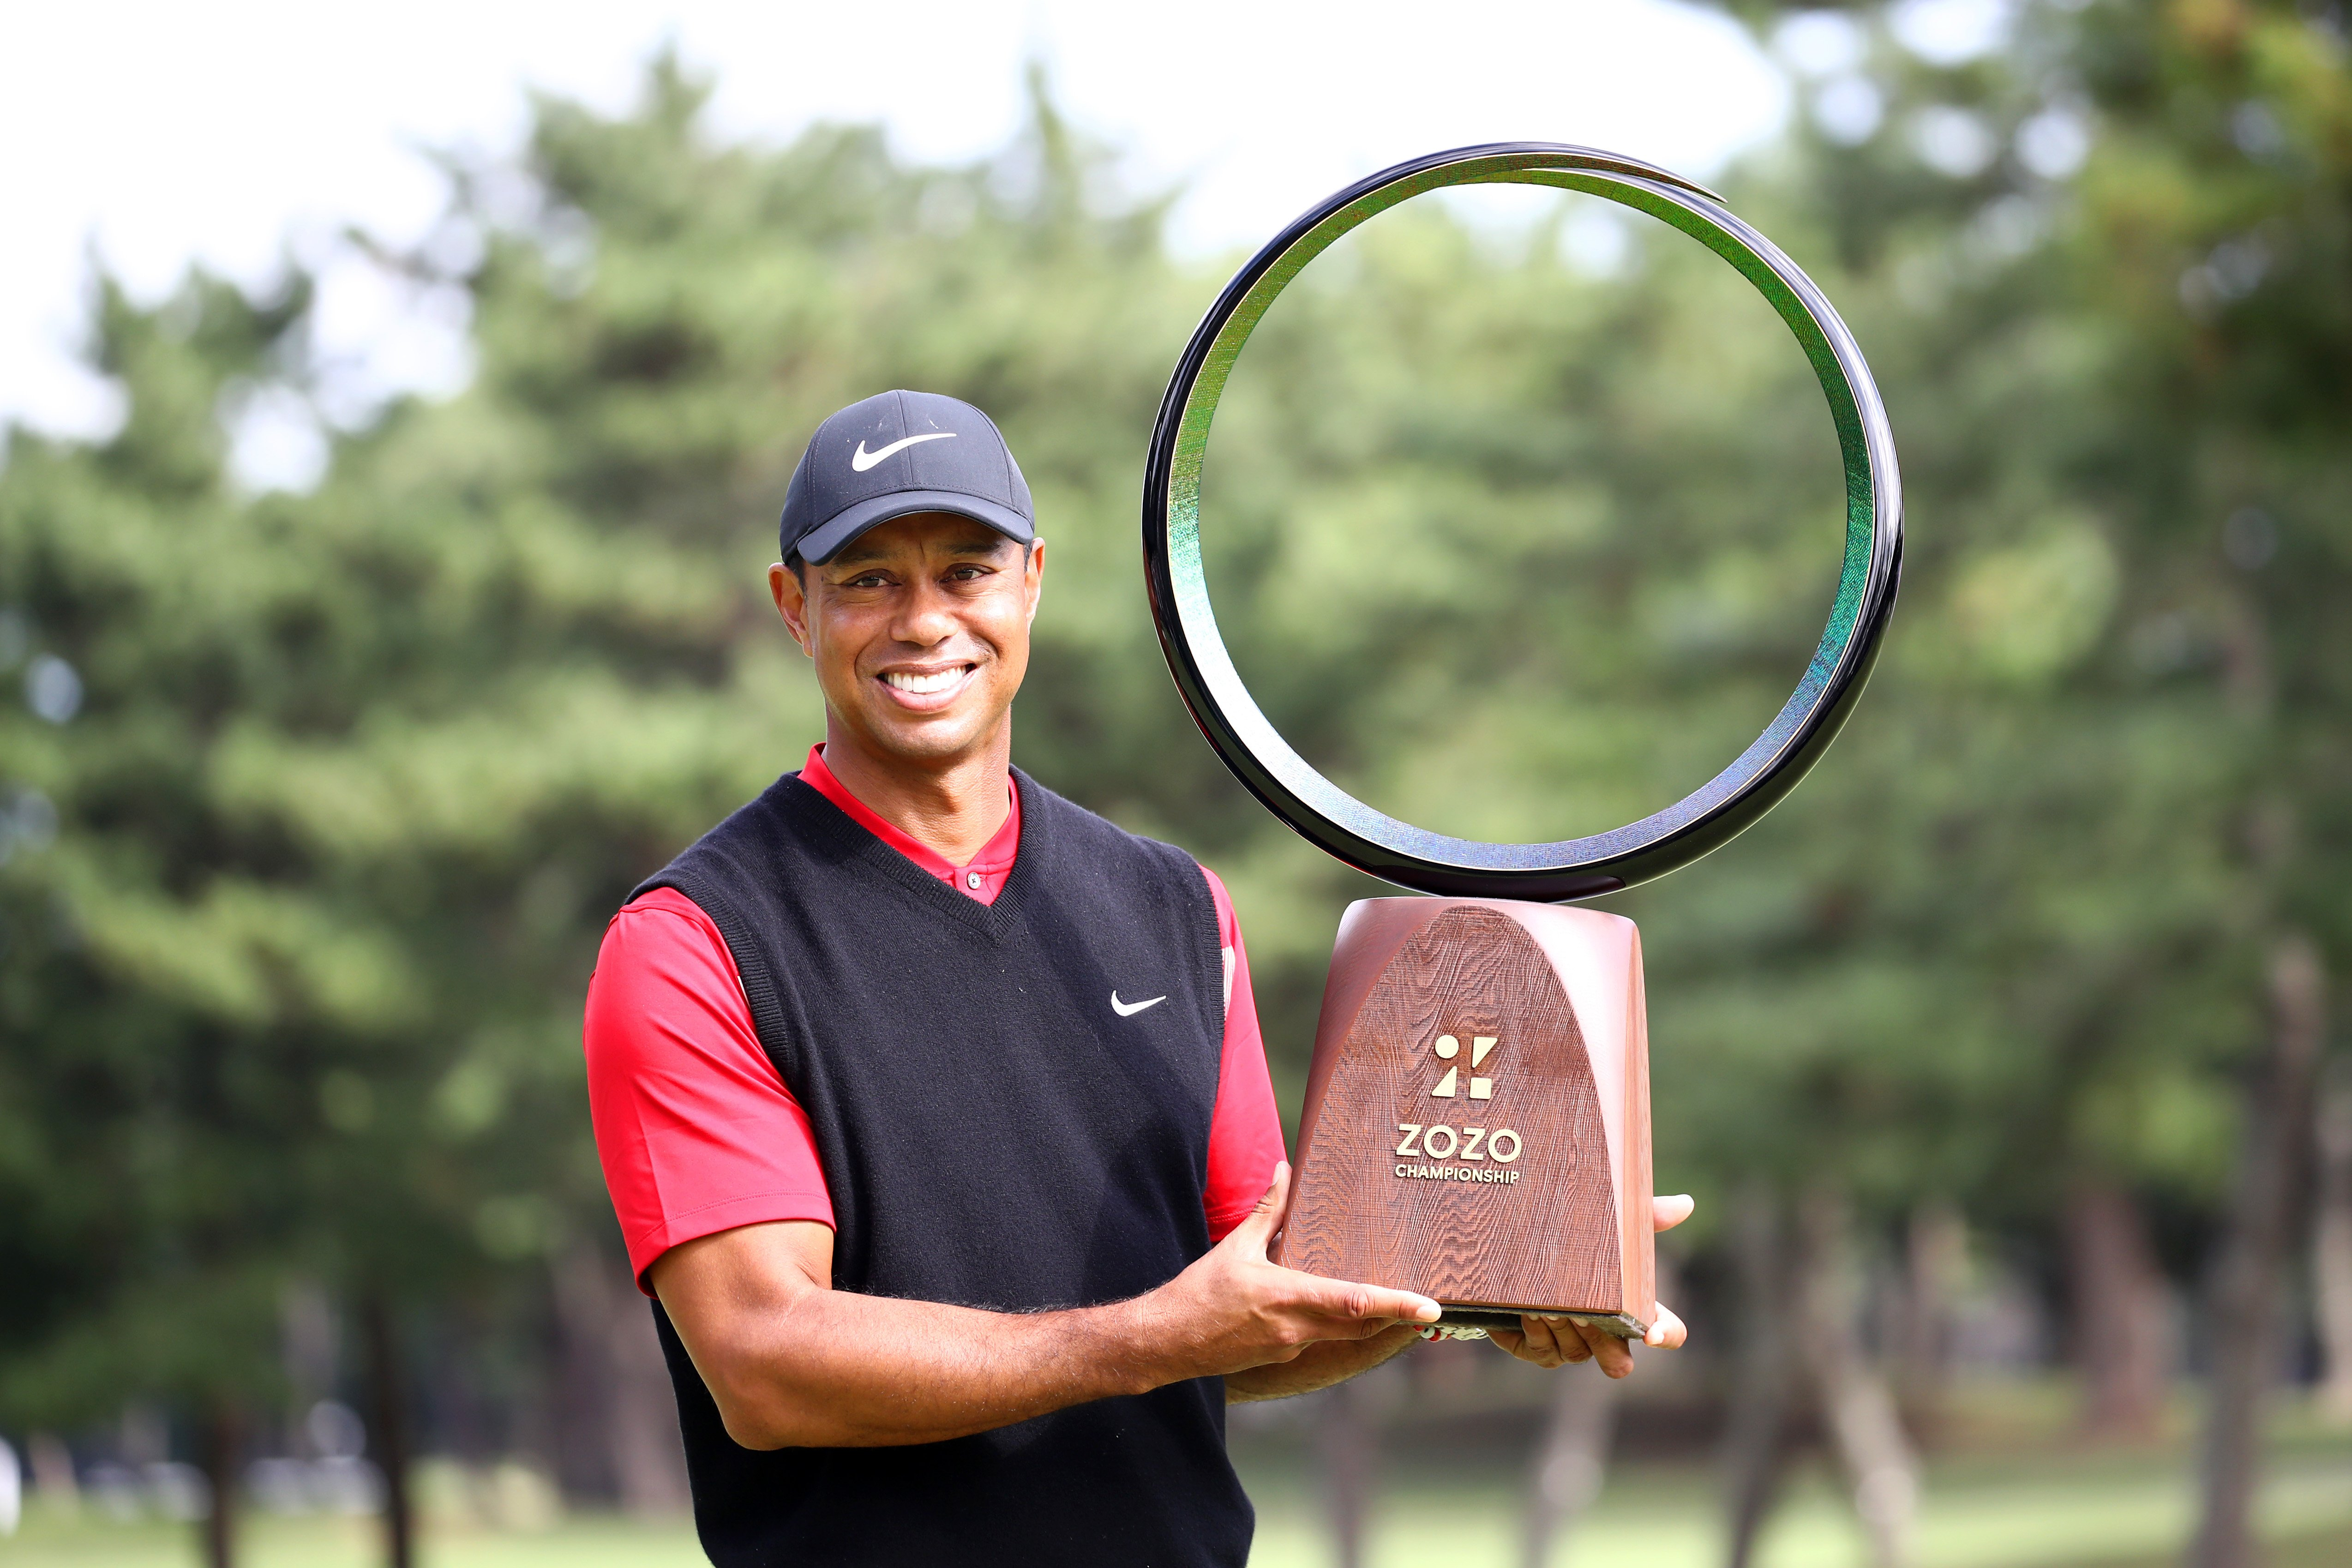 Image Credits: Getty Images / Chung Sung-Jun | Tiger Woods of the United States poses with the trophy after the award ceremony following the final round of the Zozo Championship at Accordia Golf Narashino Country Club on October 28, 2019 in Inzai, Chiba, Japan.